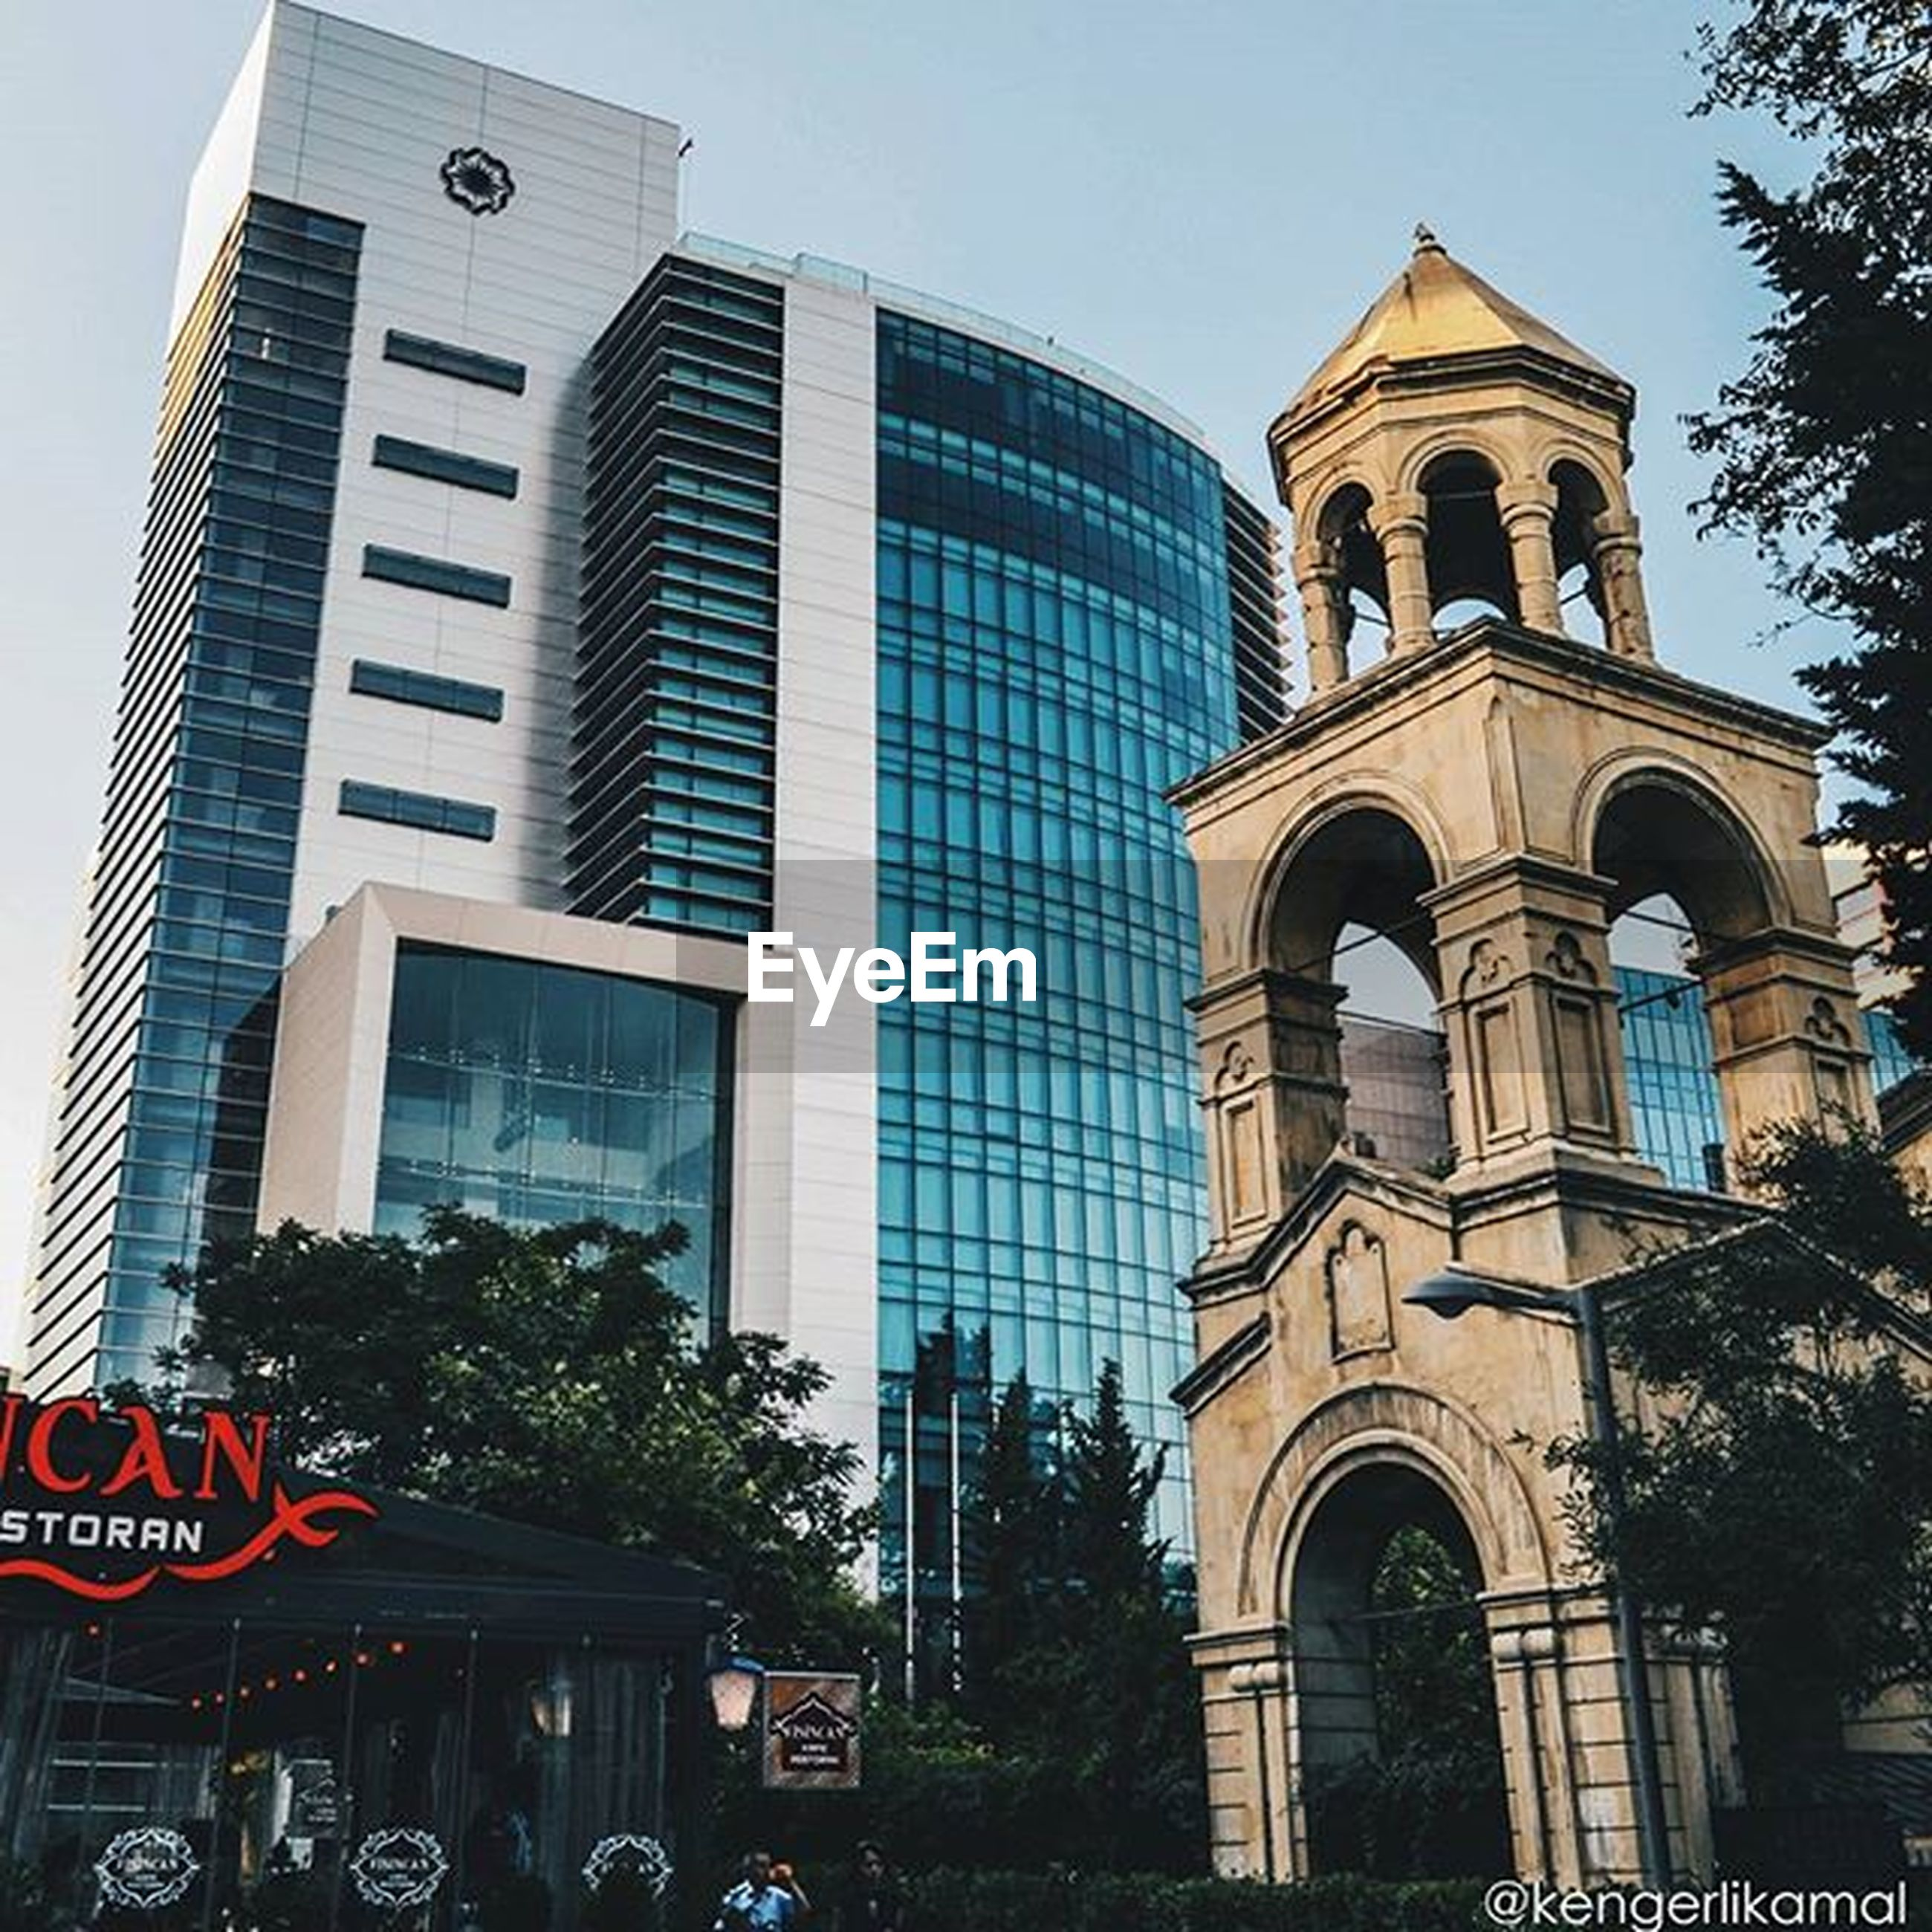 building exterior, architecture, built structure, low angle view, church, religion, tree, city, sky, facade, window, clock tower, tower, arch, clock, place of worship, day, outdoors